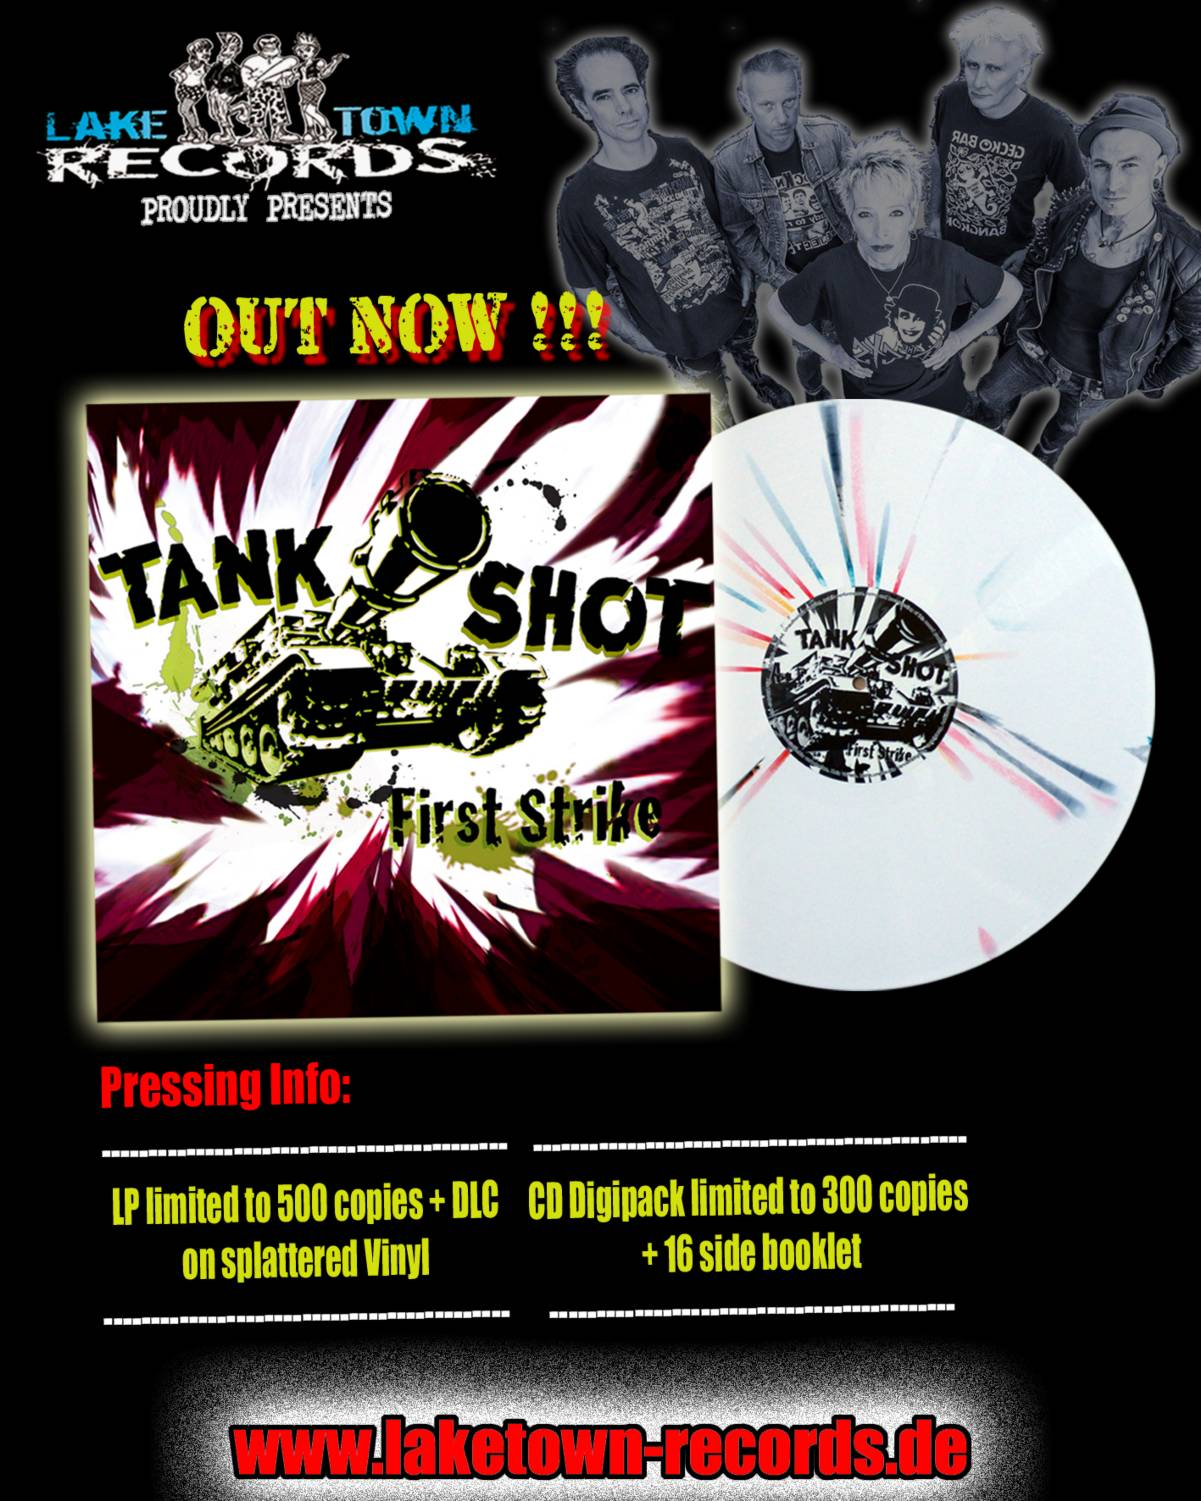 TANK SHOT -FIRST STRIKE (LP & CD DIGIPACK) OUT NOW !!!